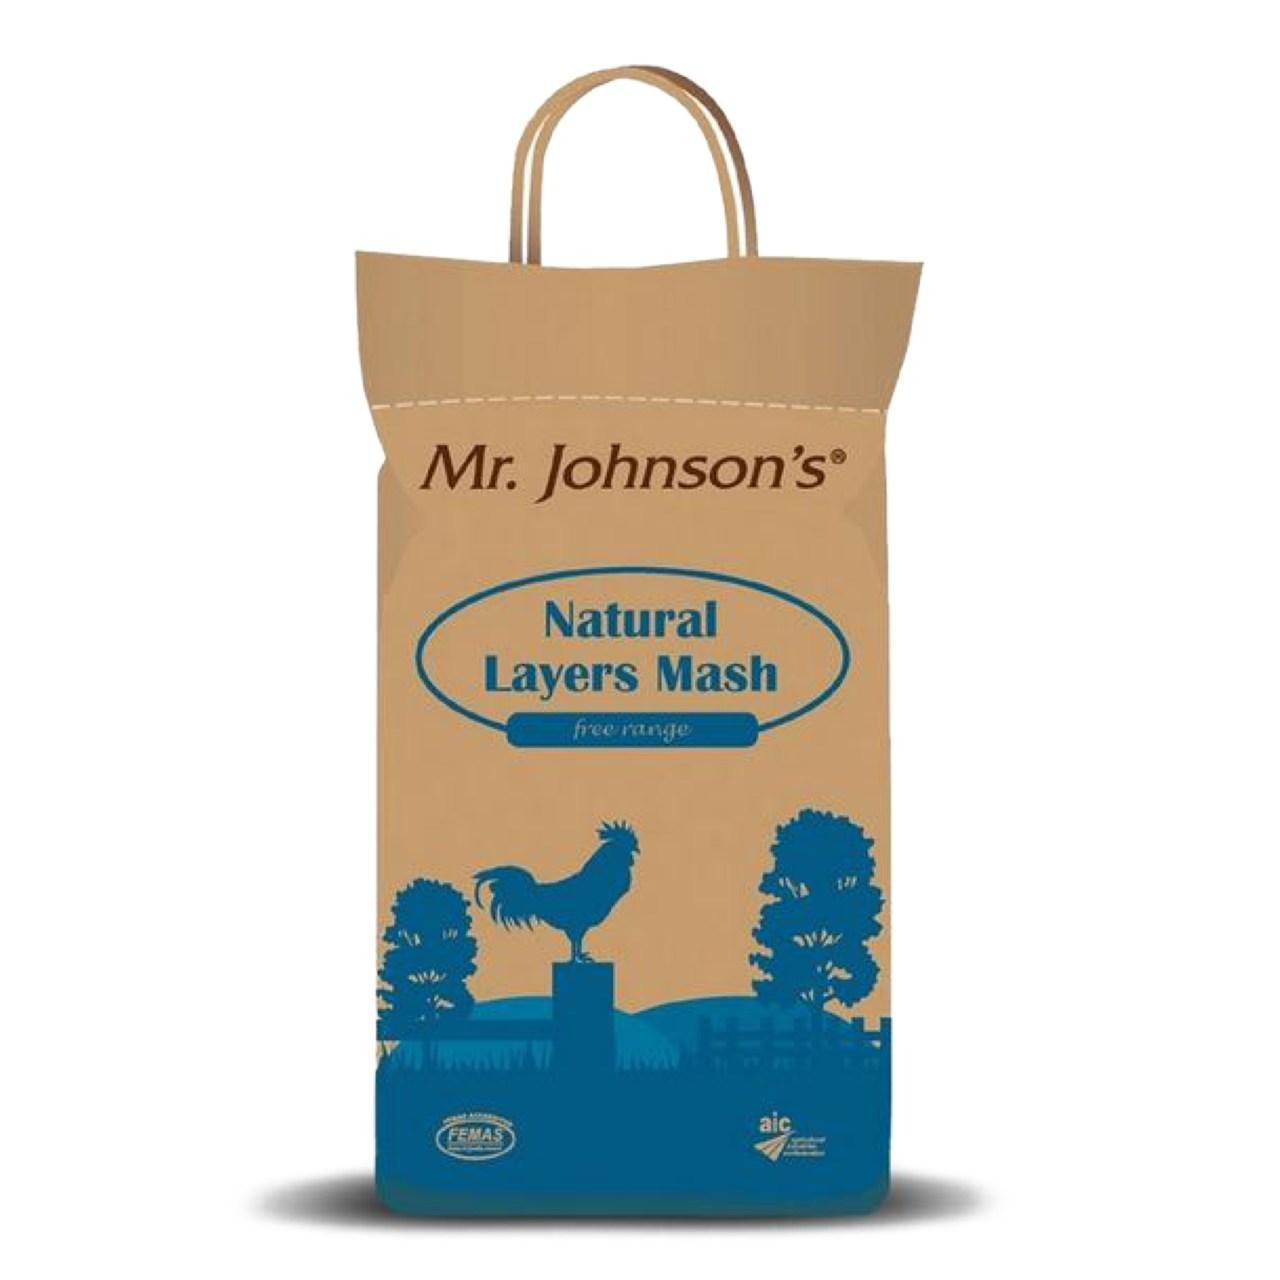 An image of Mr Johnsons Natural Layers Mash